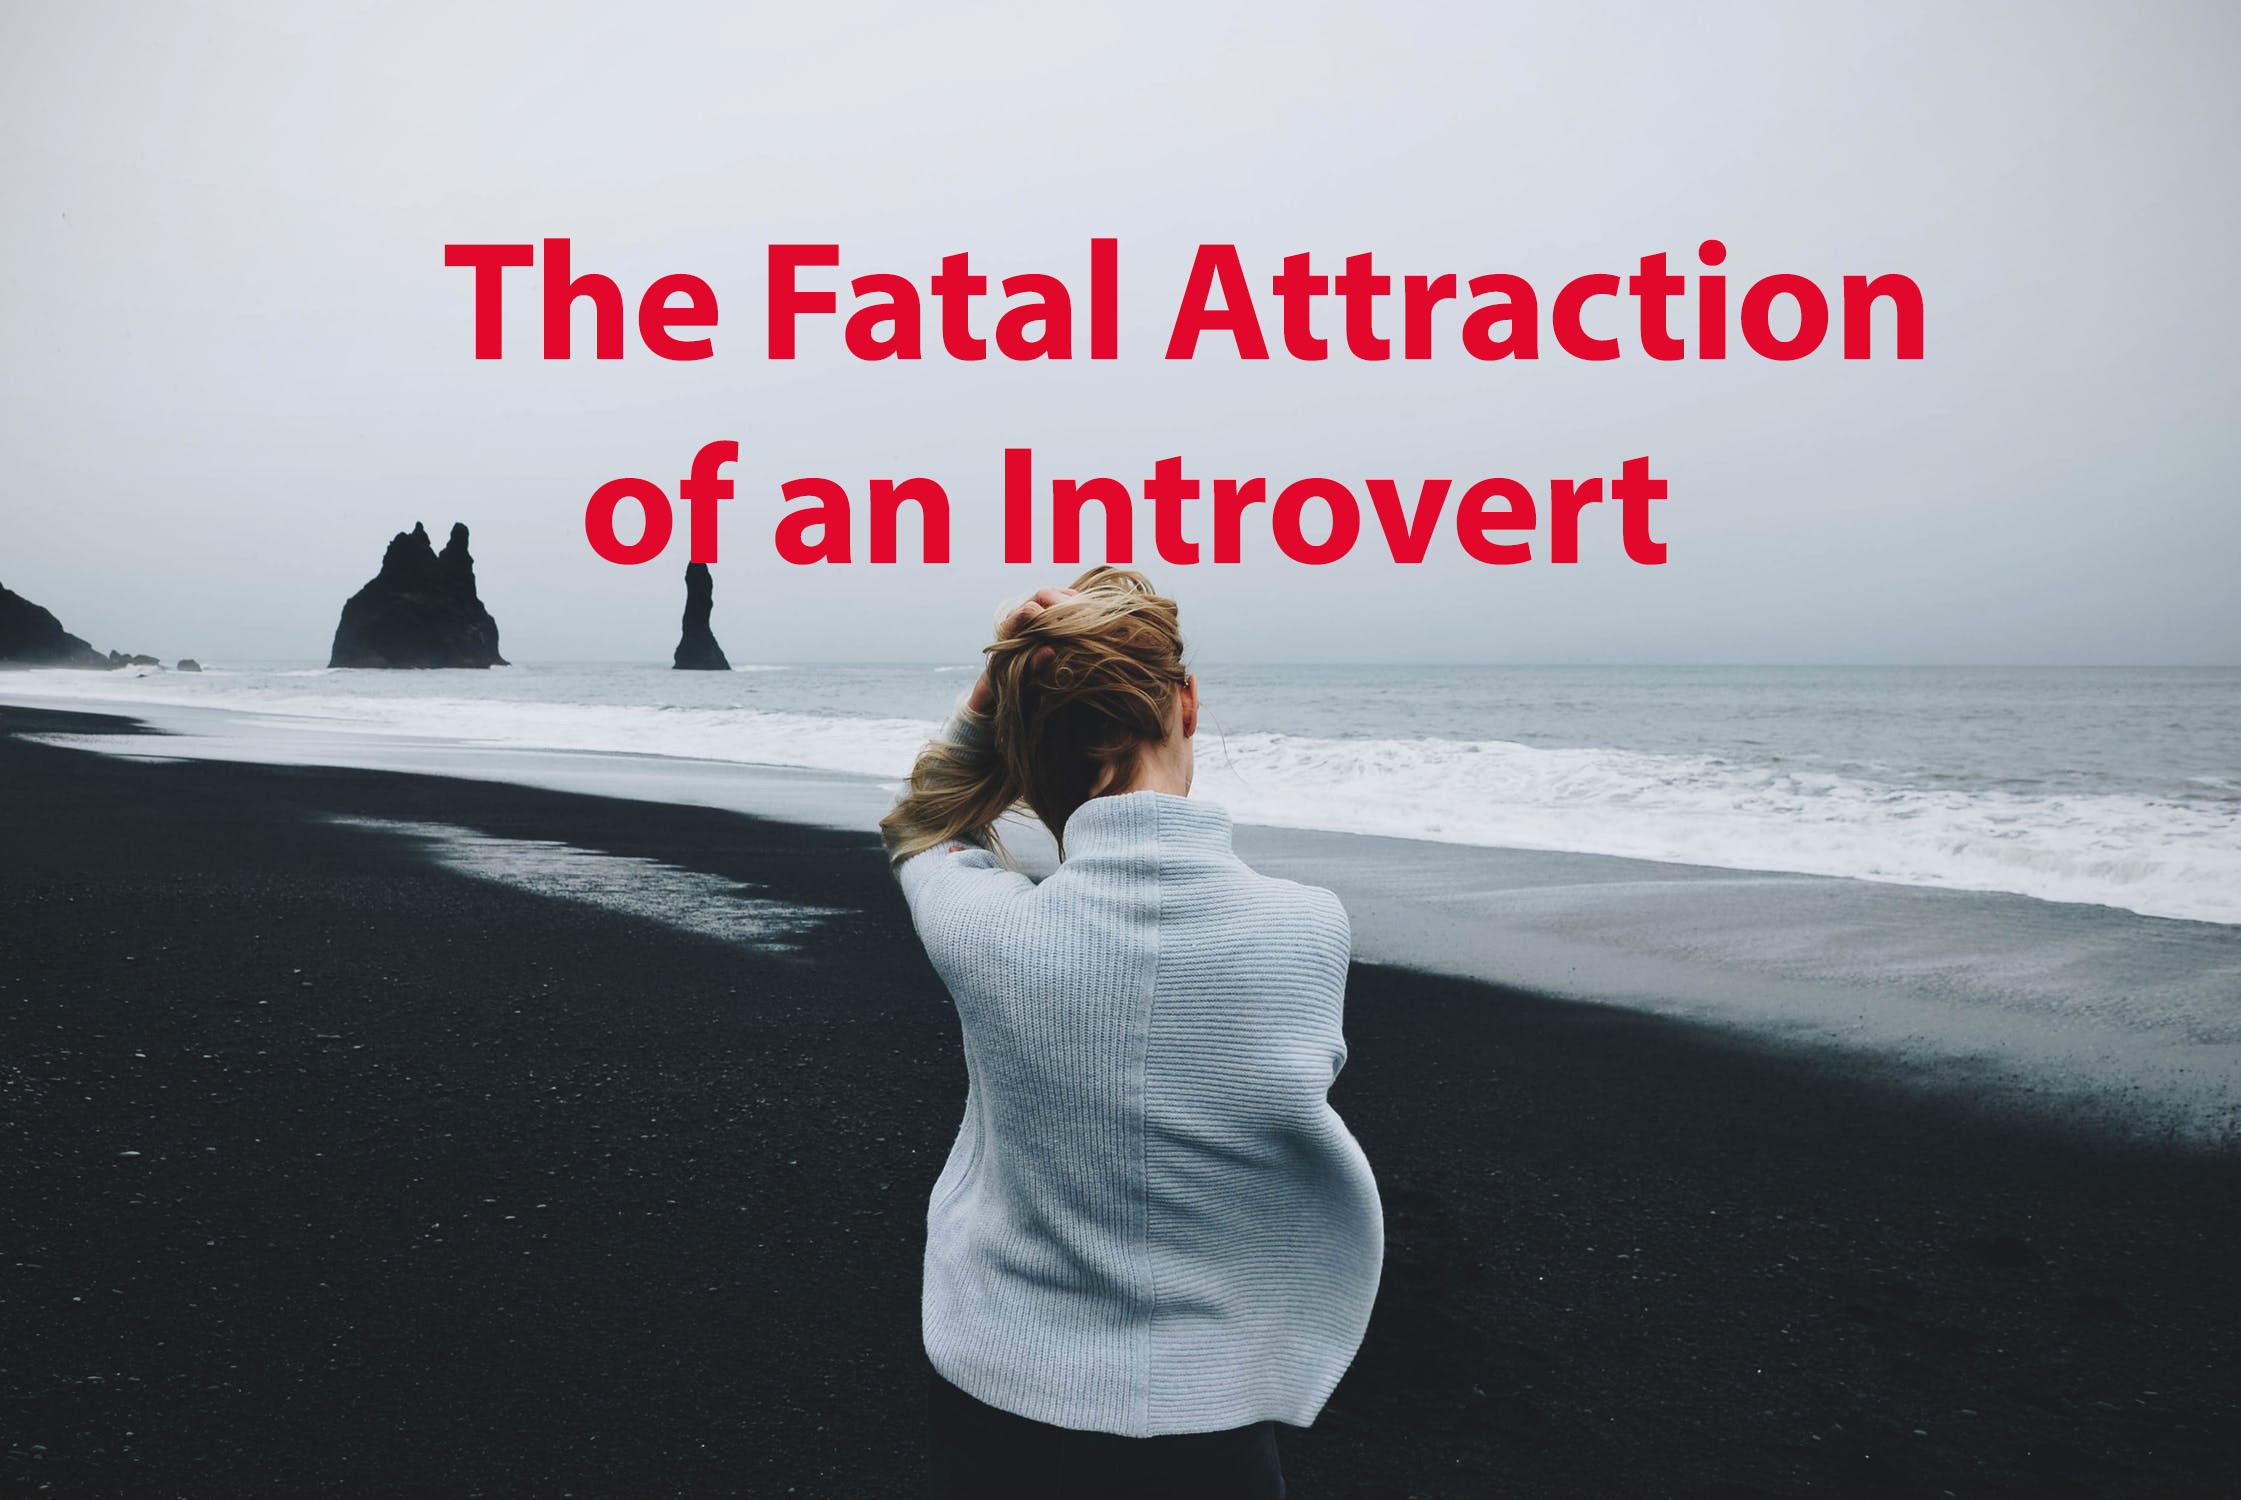 The Fatal Attraction of an Introvert